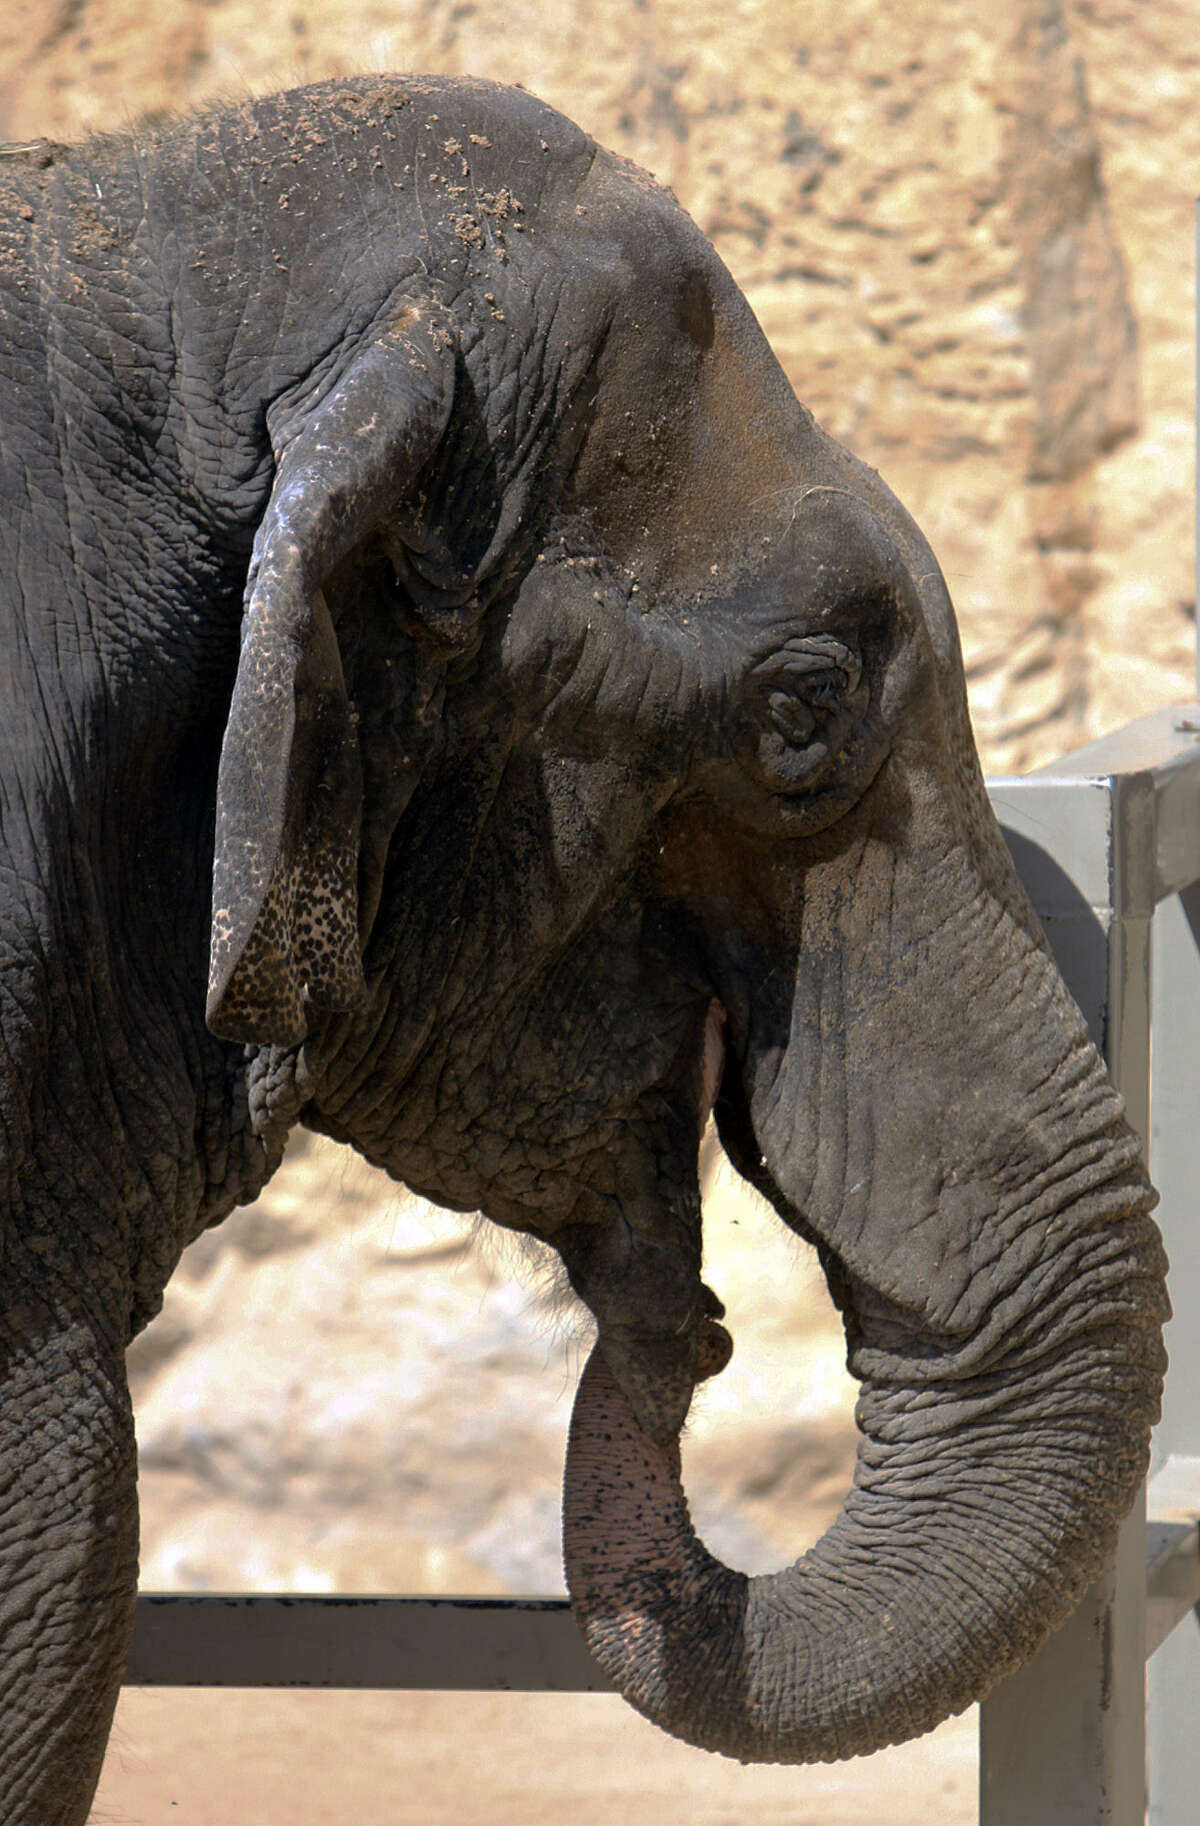 Boo is introduced to the public at the San Antonio Zoo. Boo arrived in 2010 from a private owner.